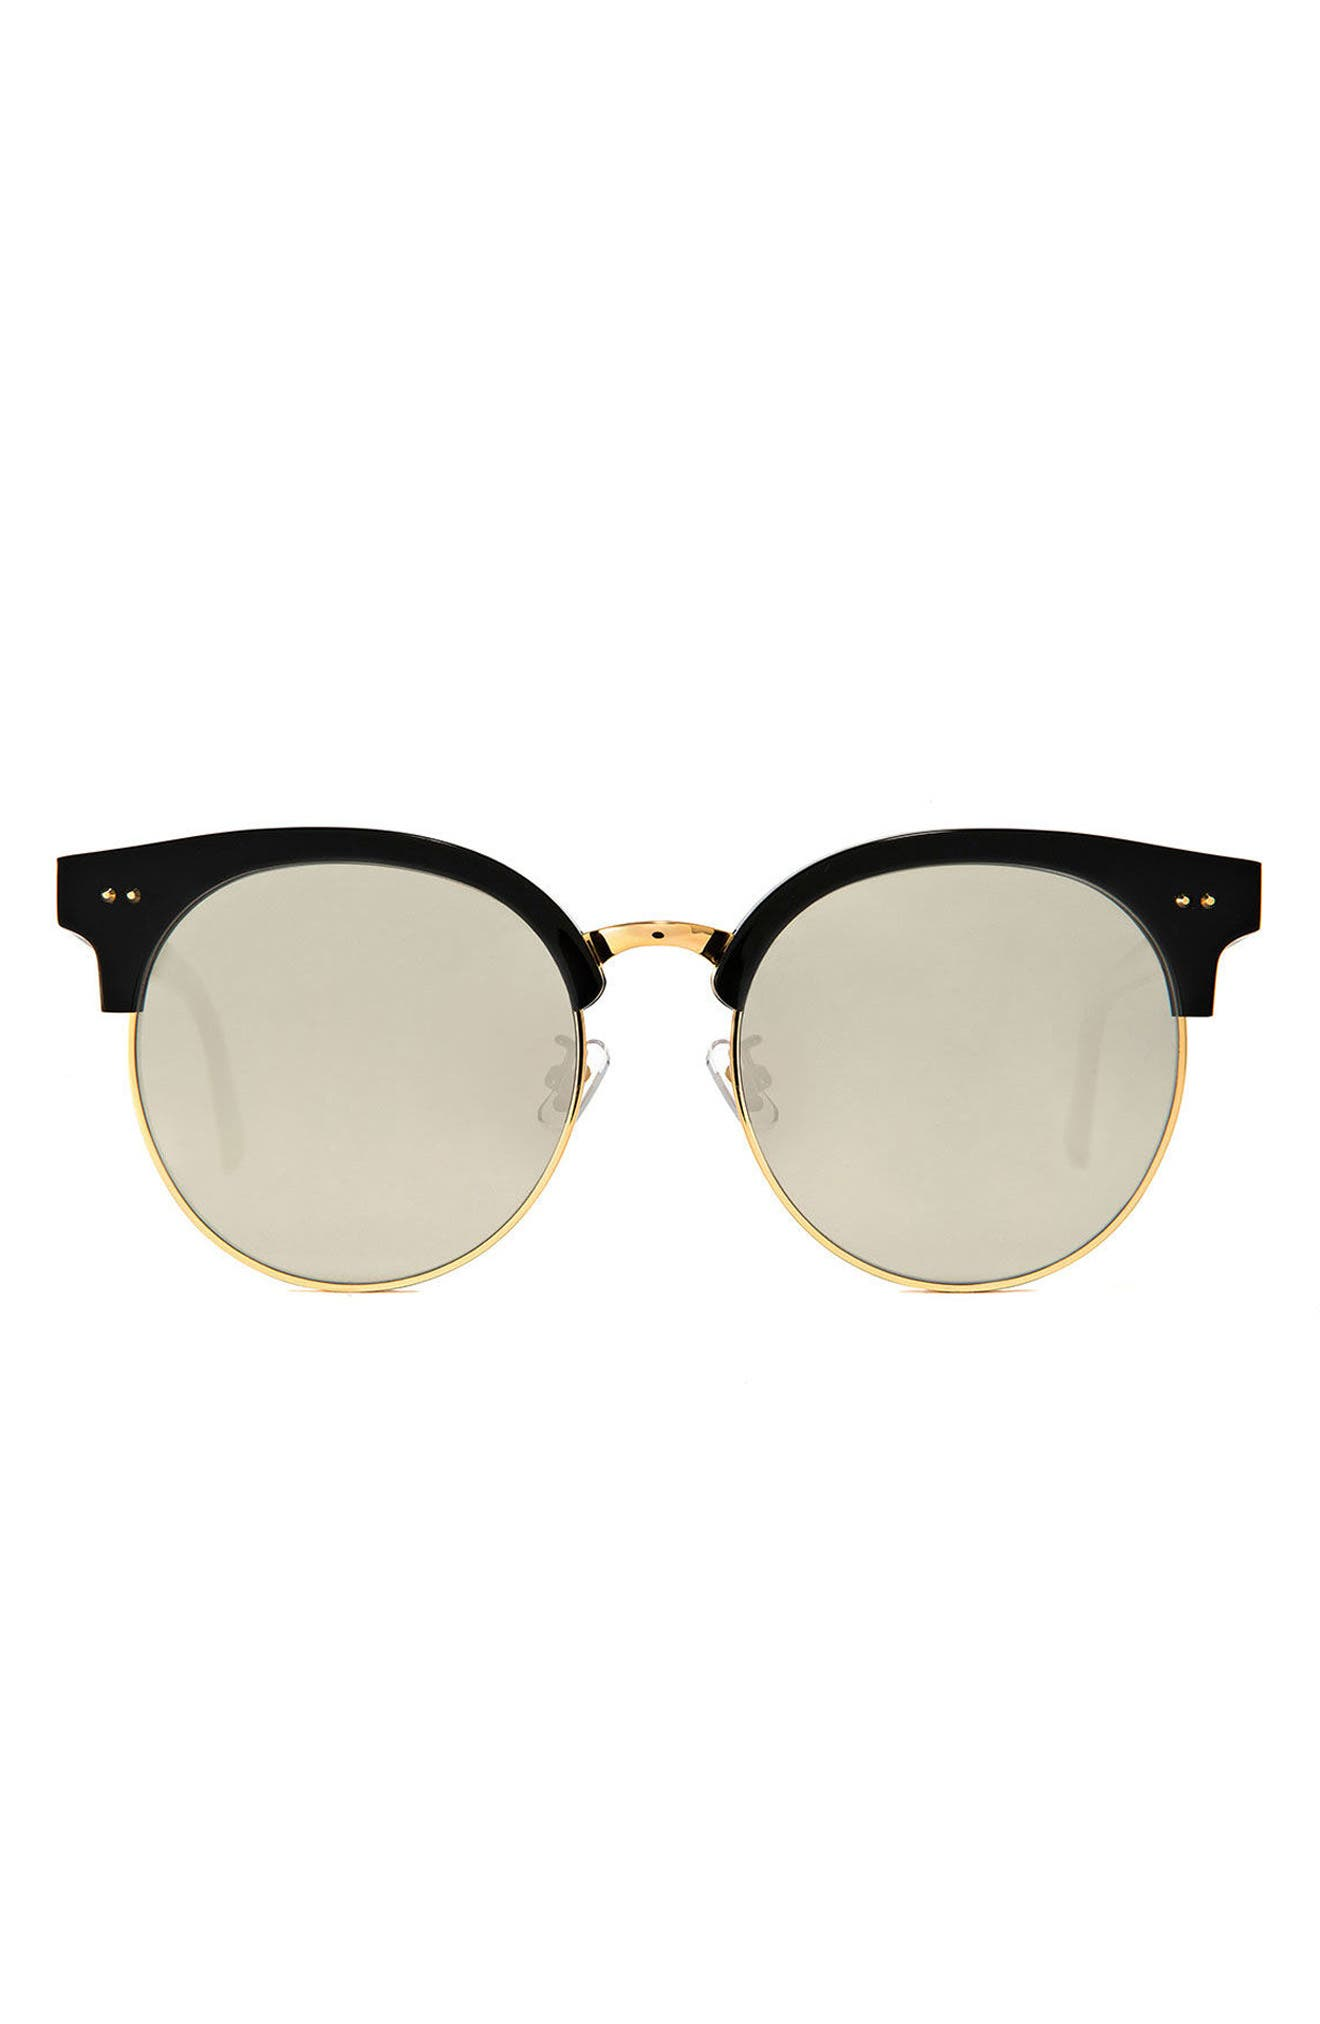 Moon Cut 55mm Sunglasses,                             Main thumbnail 1, color,                             Black/Gold